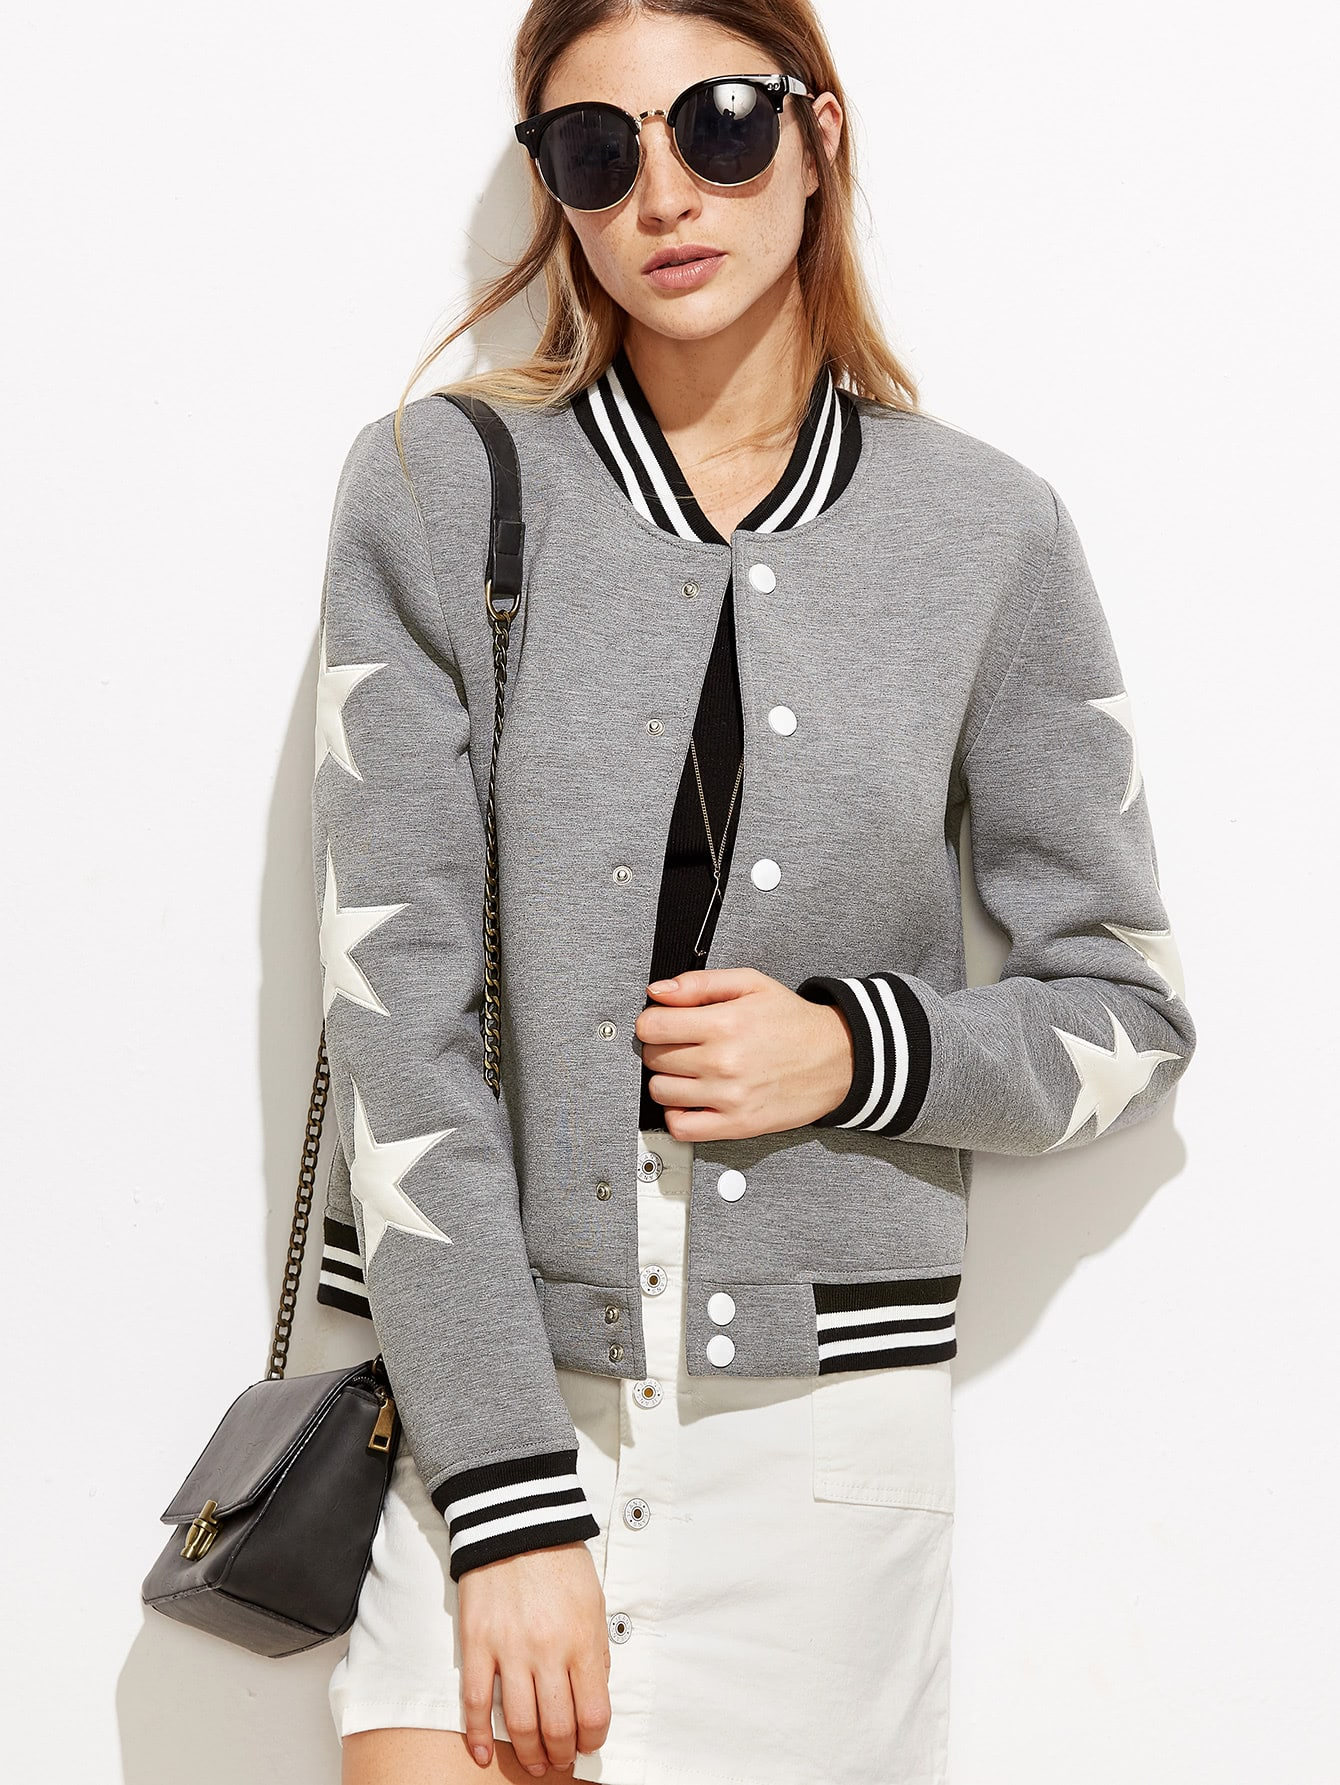 Heather Grey Striped Trim Star Patch Baseball JacketHeather Grey Striped Trim Star Patch Baseball Jacket<br><br>color: Grey<br>size: L,M,S,XS